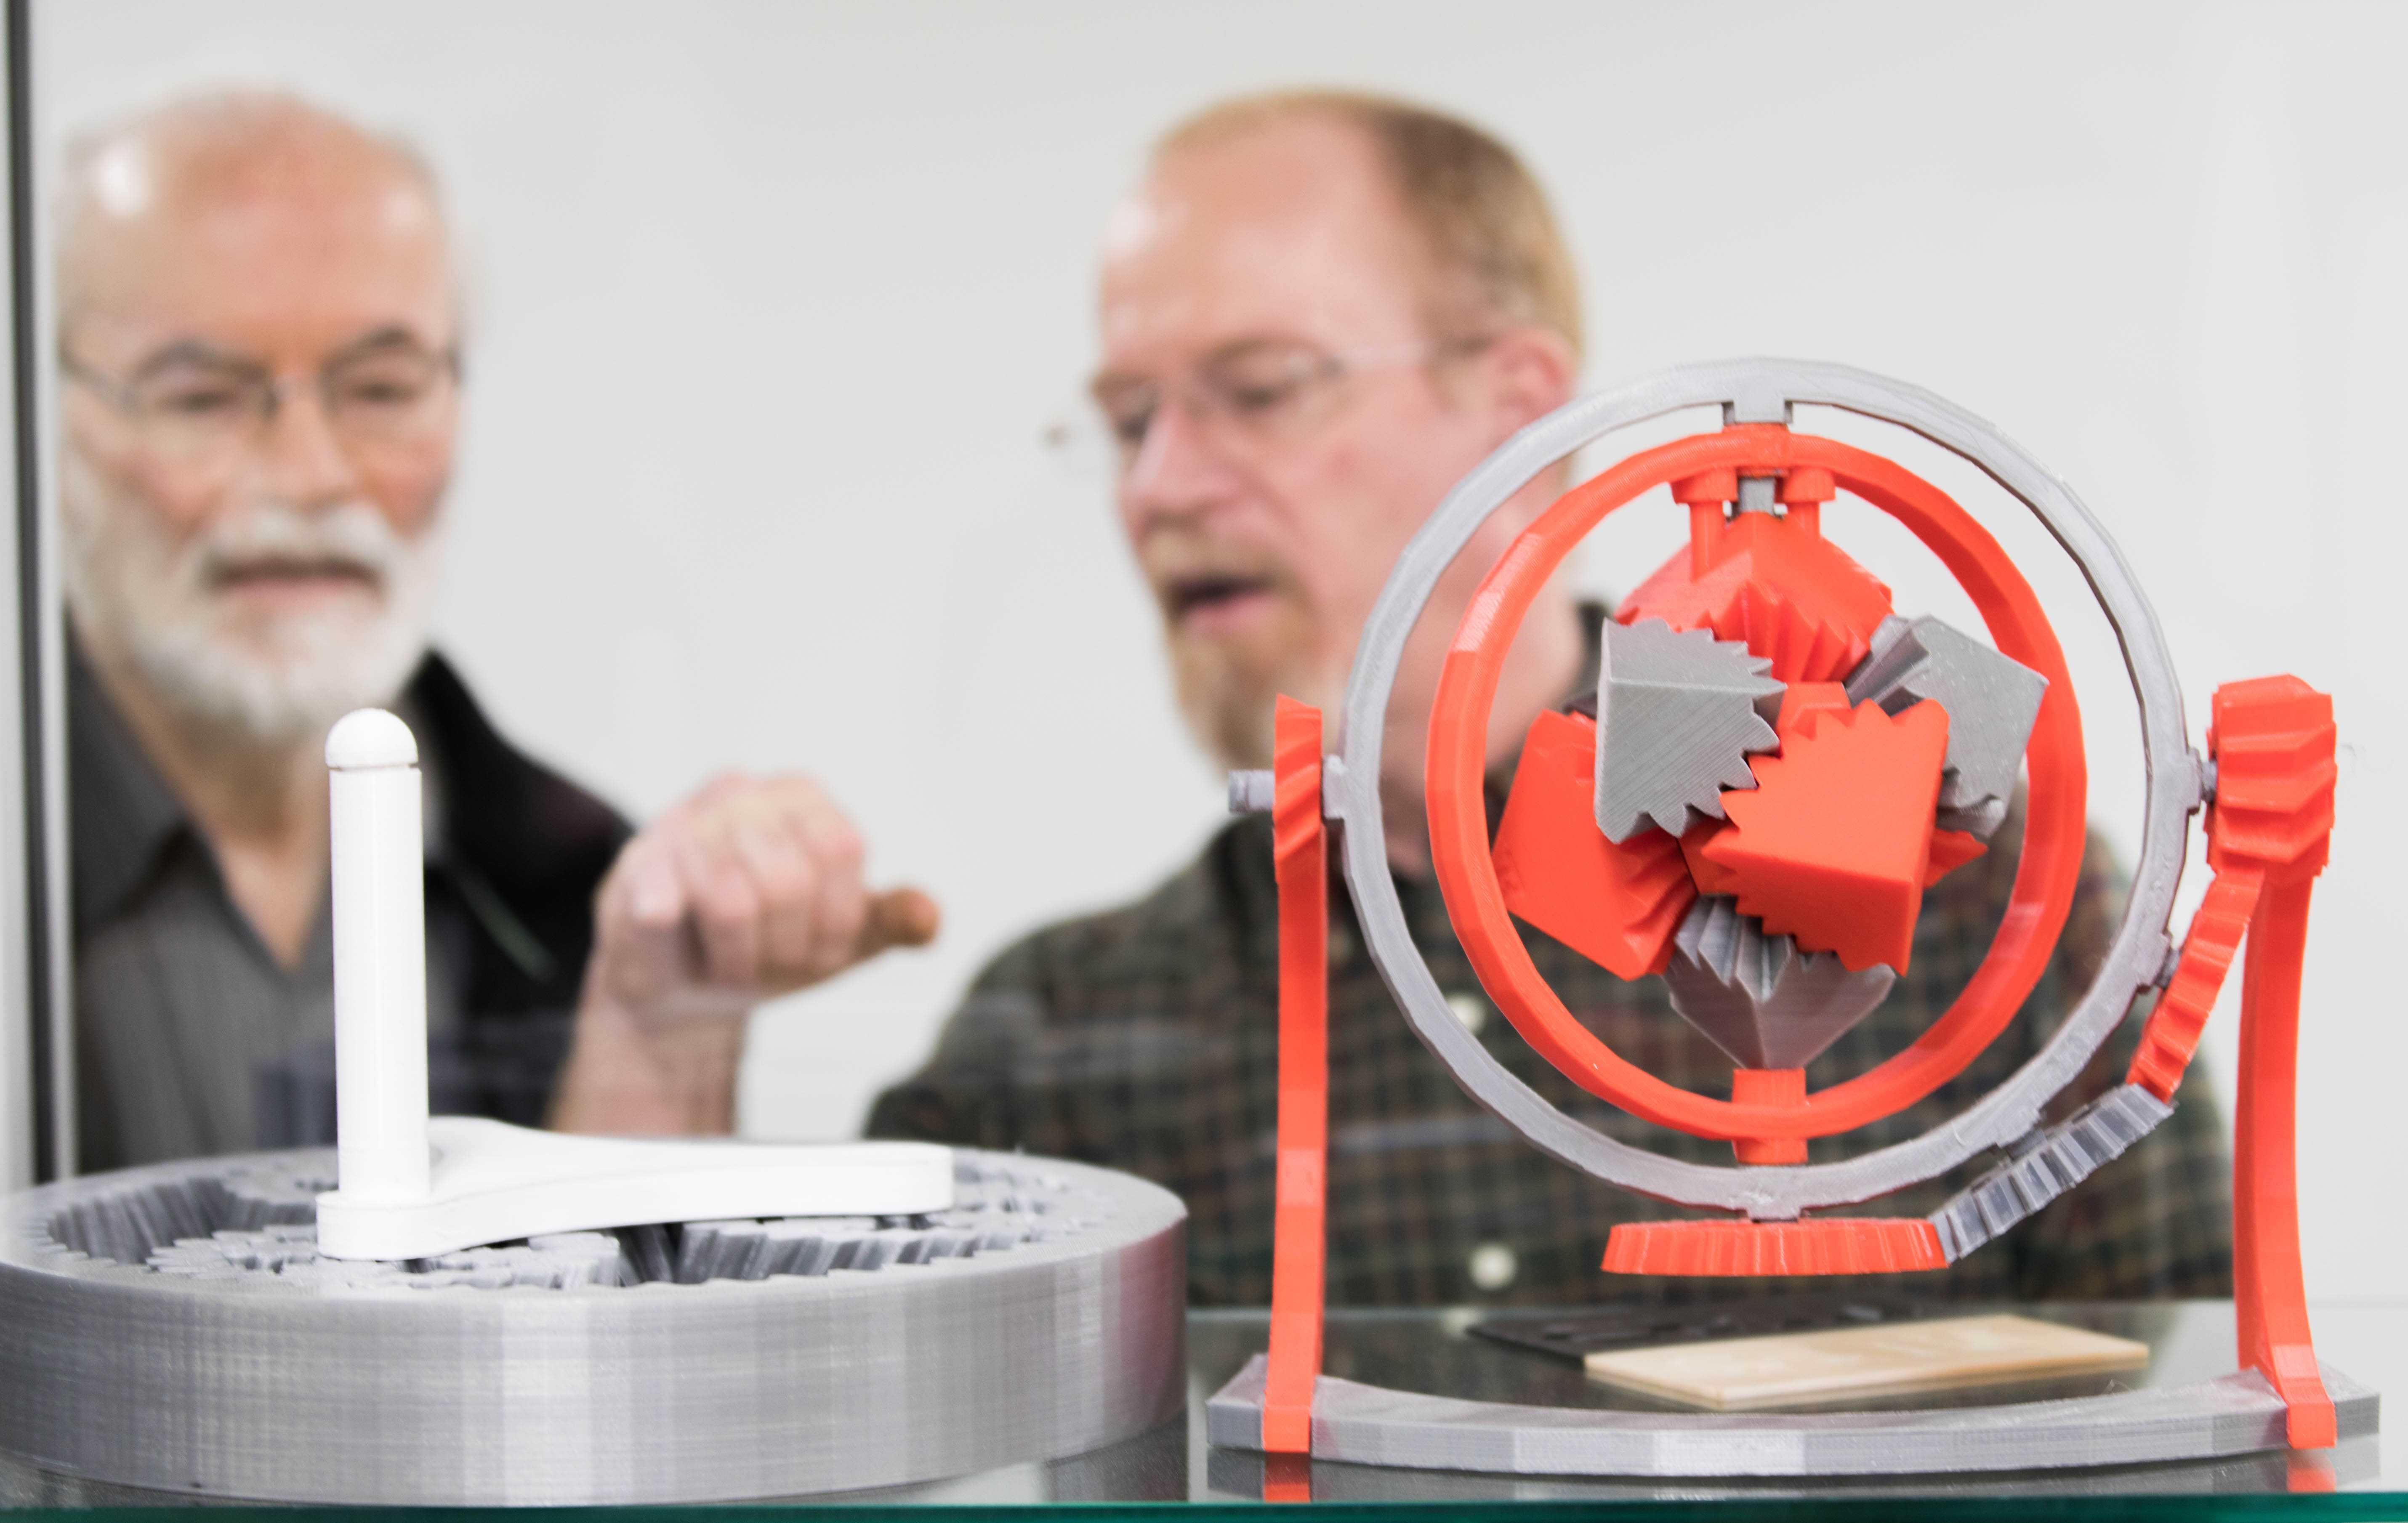 Ken Tedder and Steve Copeland, staff for mechanical engineering, looks at an intricate 3-D models made with equipment at the Experiential Engineering Building. The Experiential Engineering Building will offer 3-D printers for students, faculty and the community. (Jan. 17, 2017)